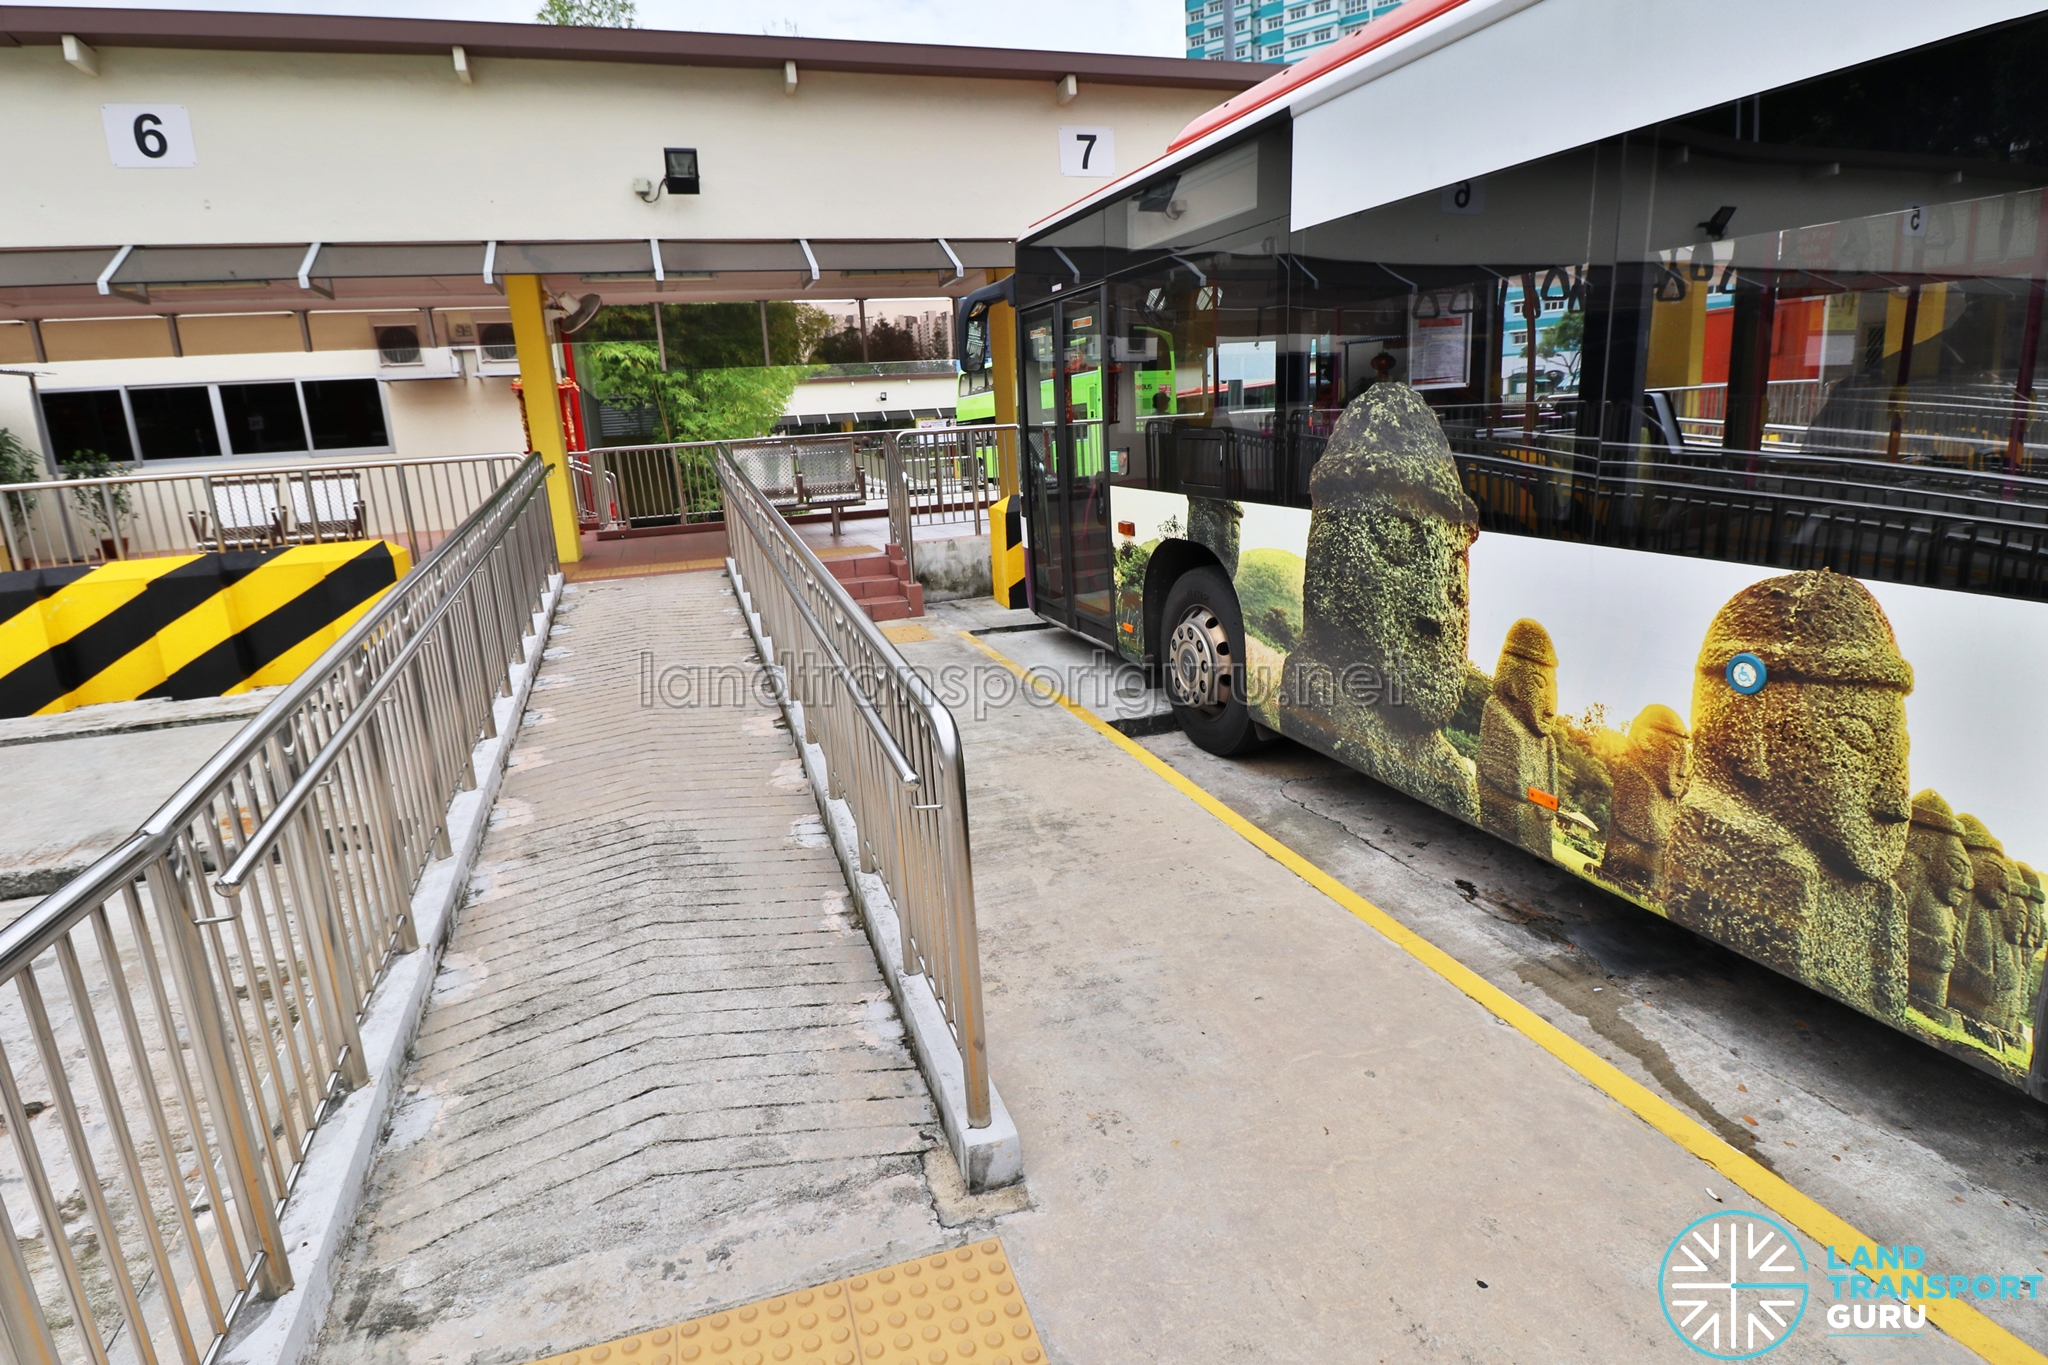 Saint Michael s Bus Terminal Wheelchair ramp modification